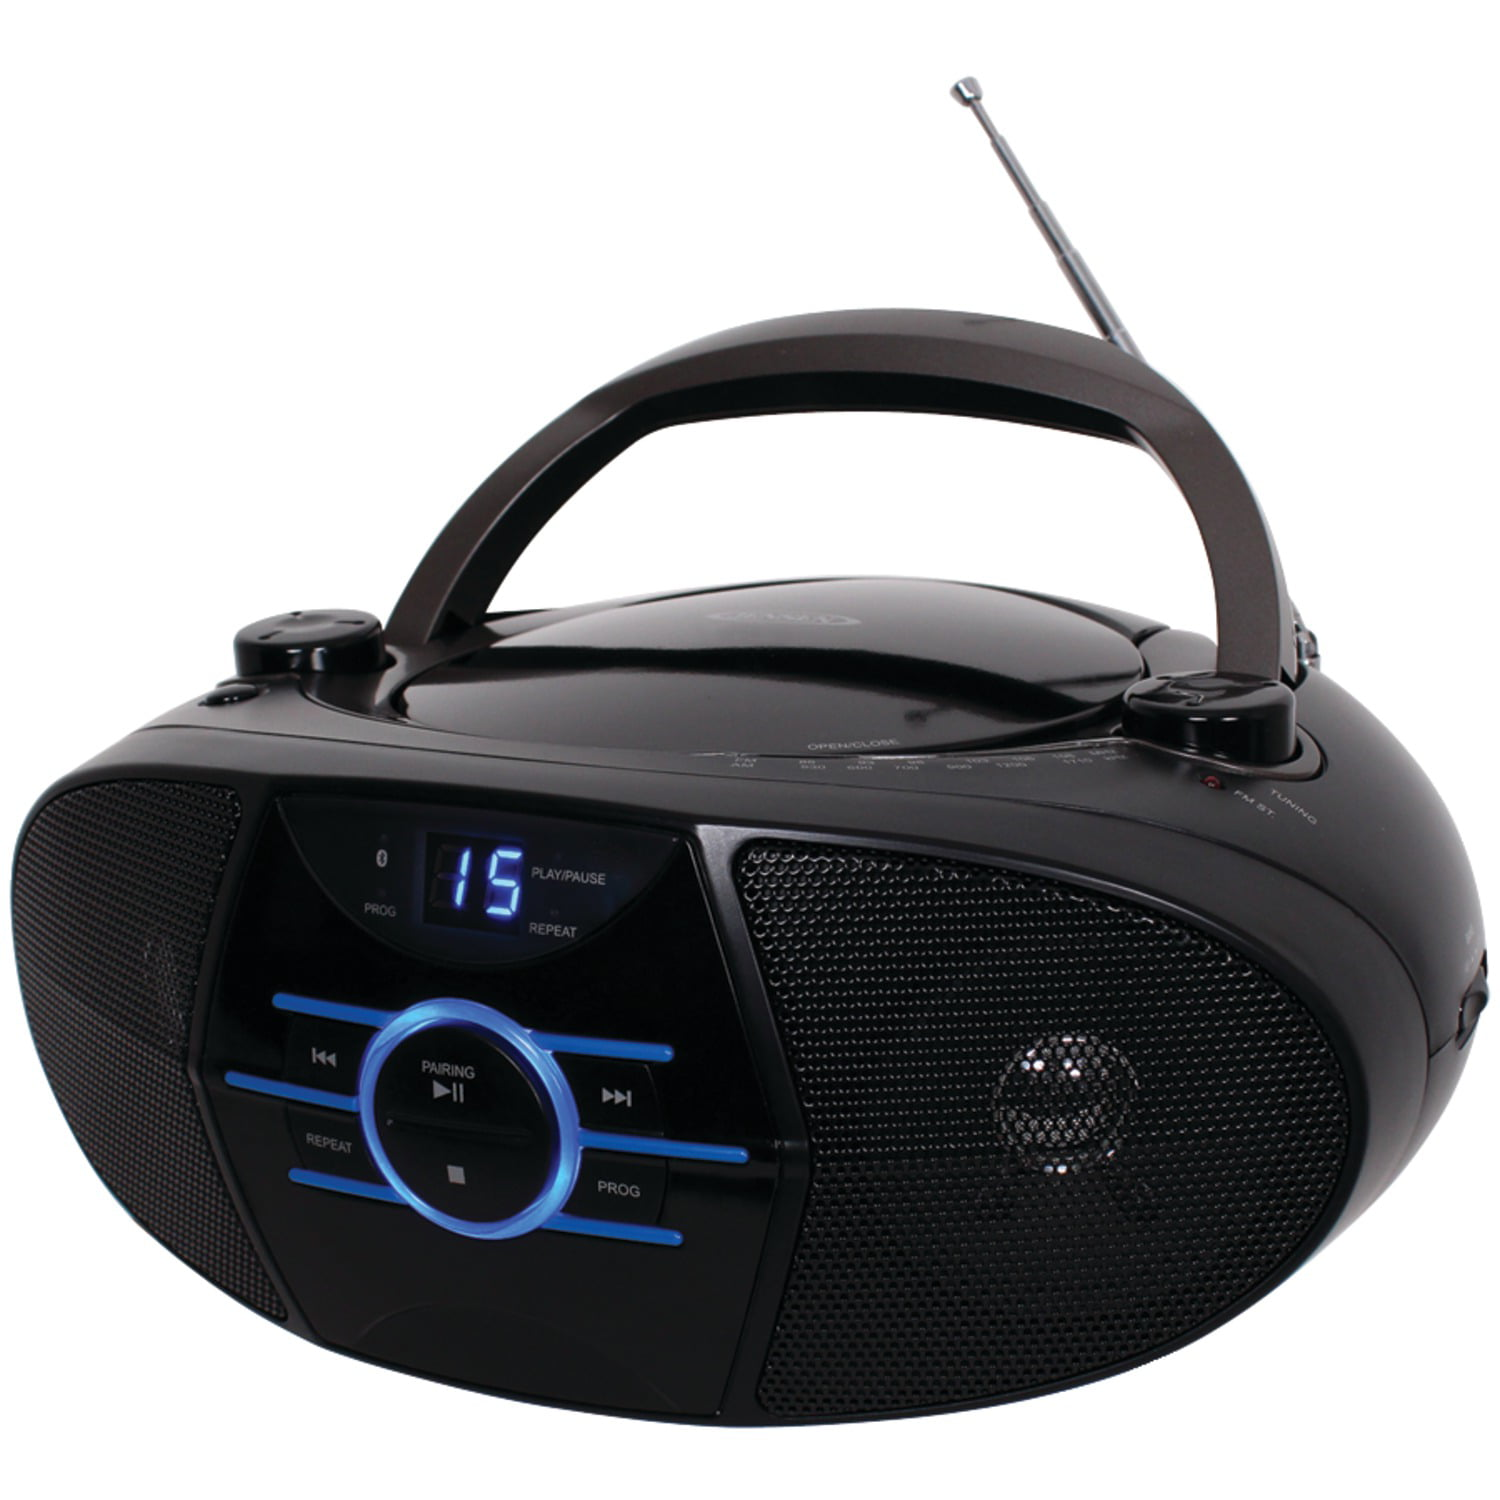 JENSEN CD-560 Portable Stereo CD Player with AM FM Stereo Radio & Bluetooth by Jensen